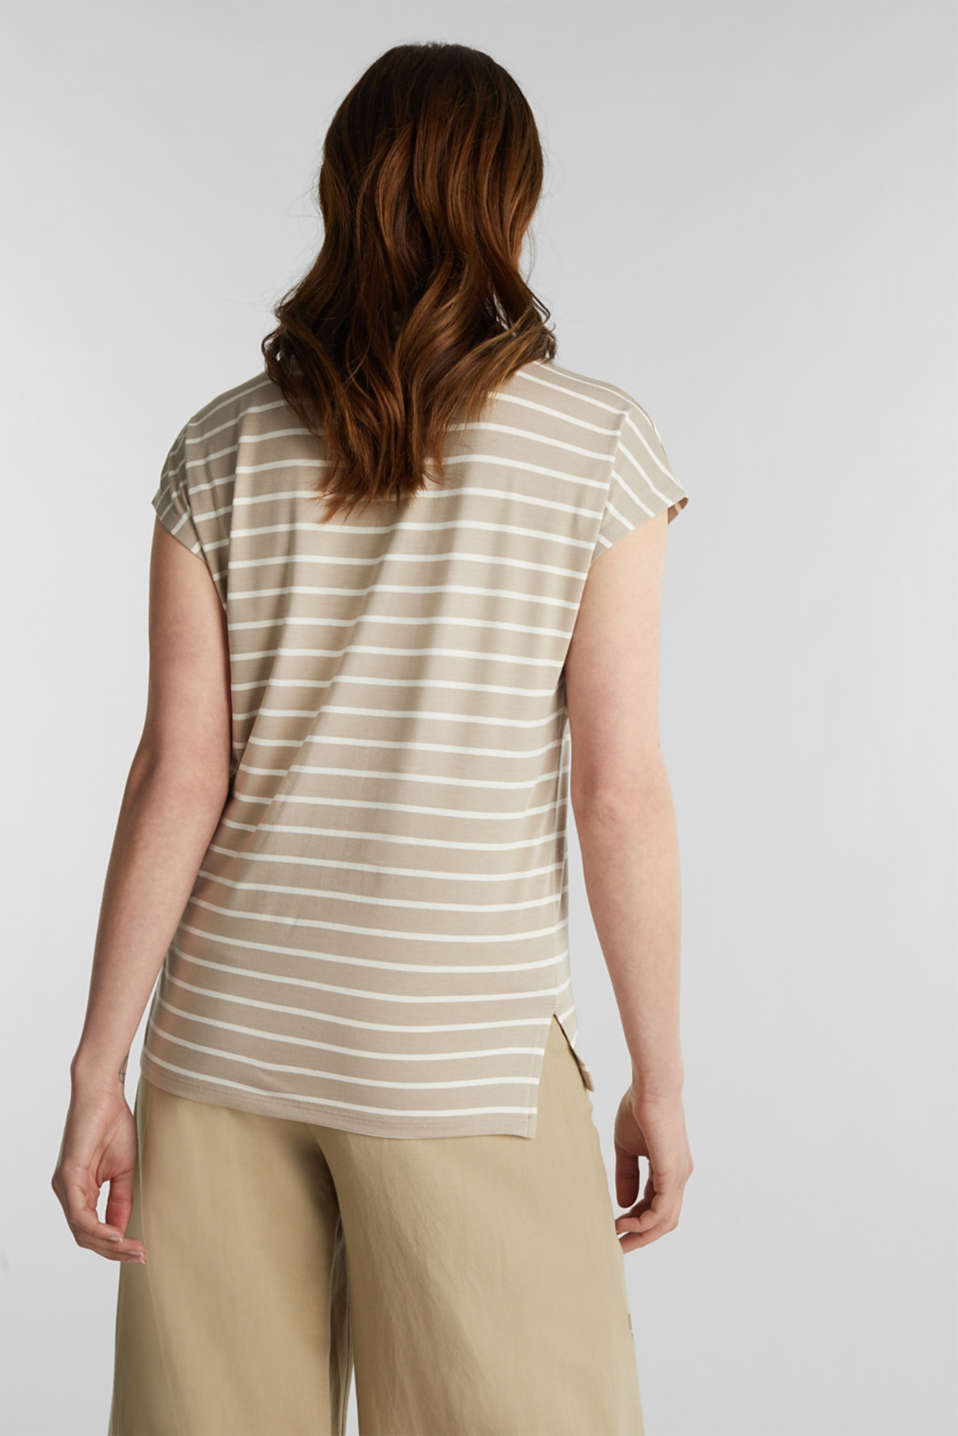 Stretch top with stripes, BEIGE, detail image number 2